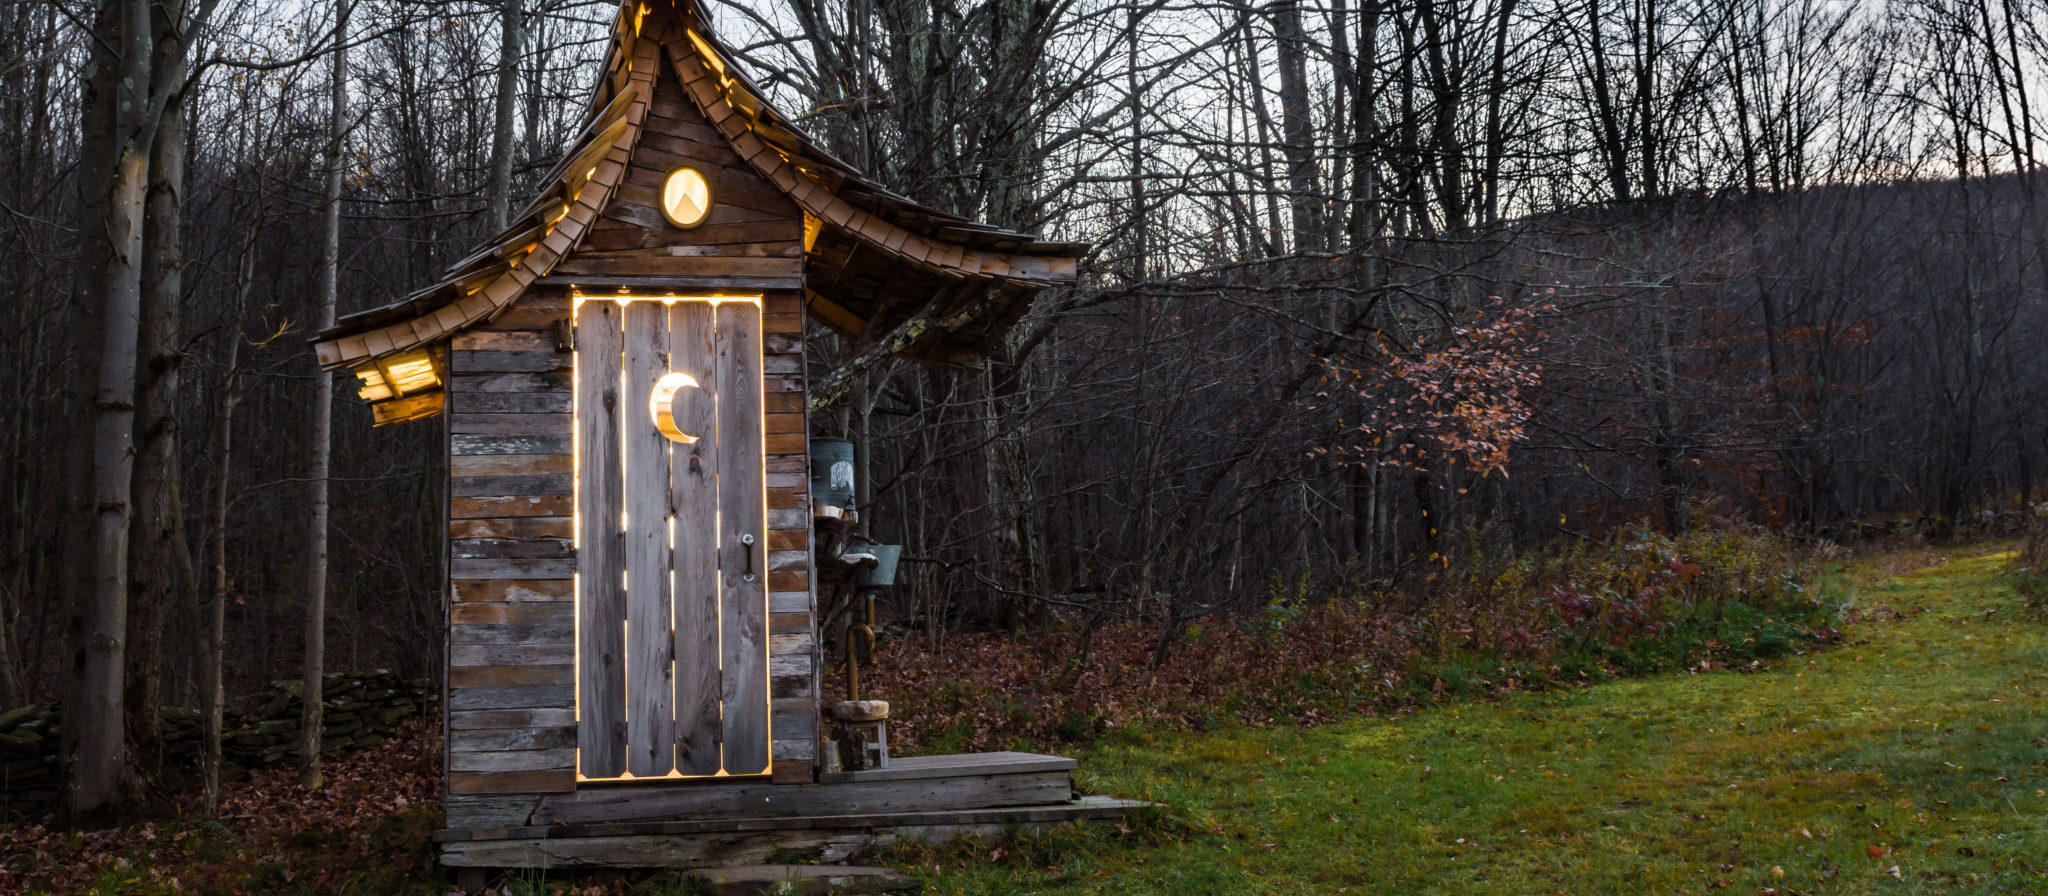 It is not very often a backpacker is lucky enough to happen upon an outhouse on their travels. If you do, always take advantage of it.